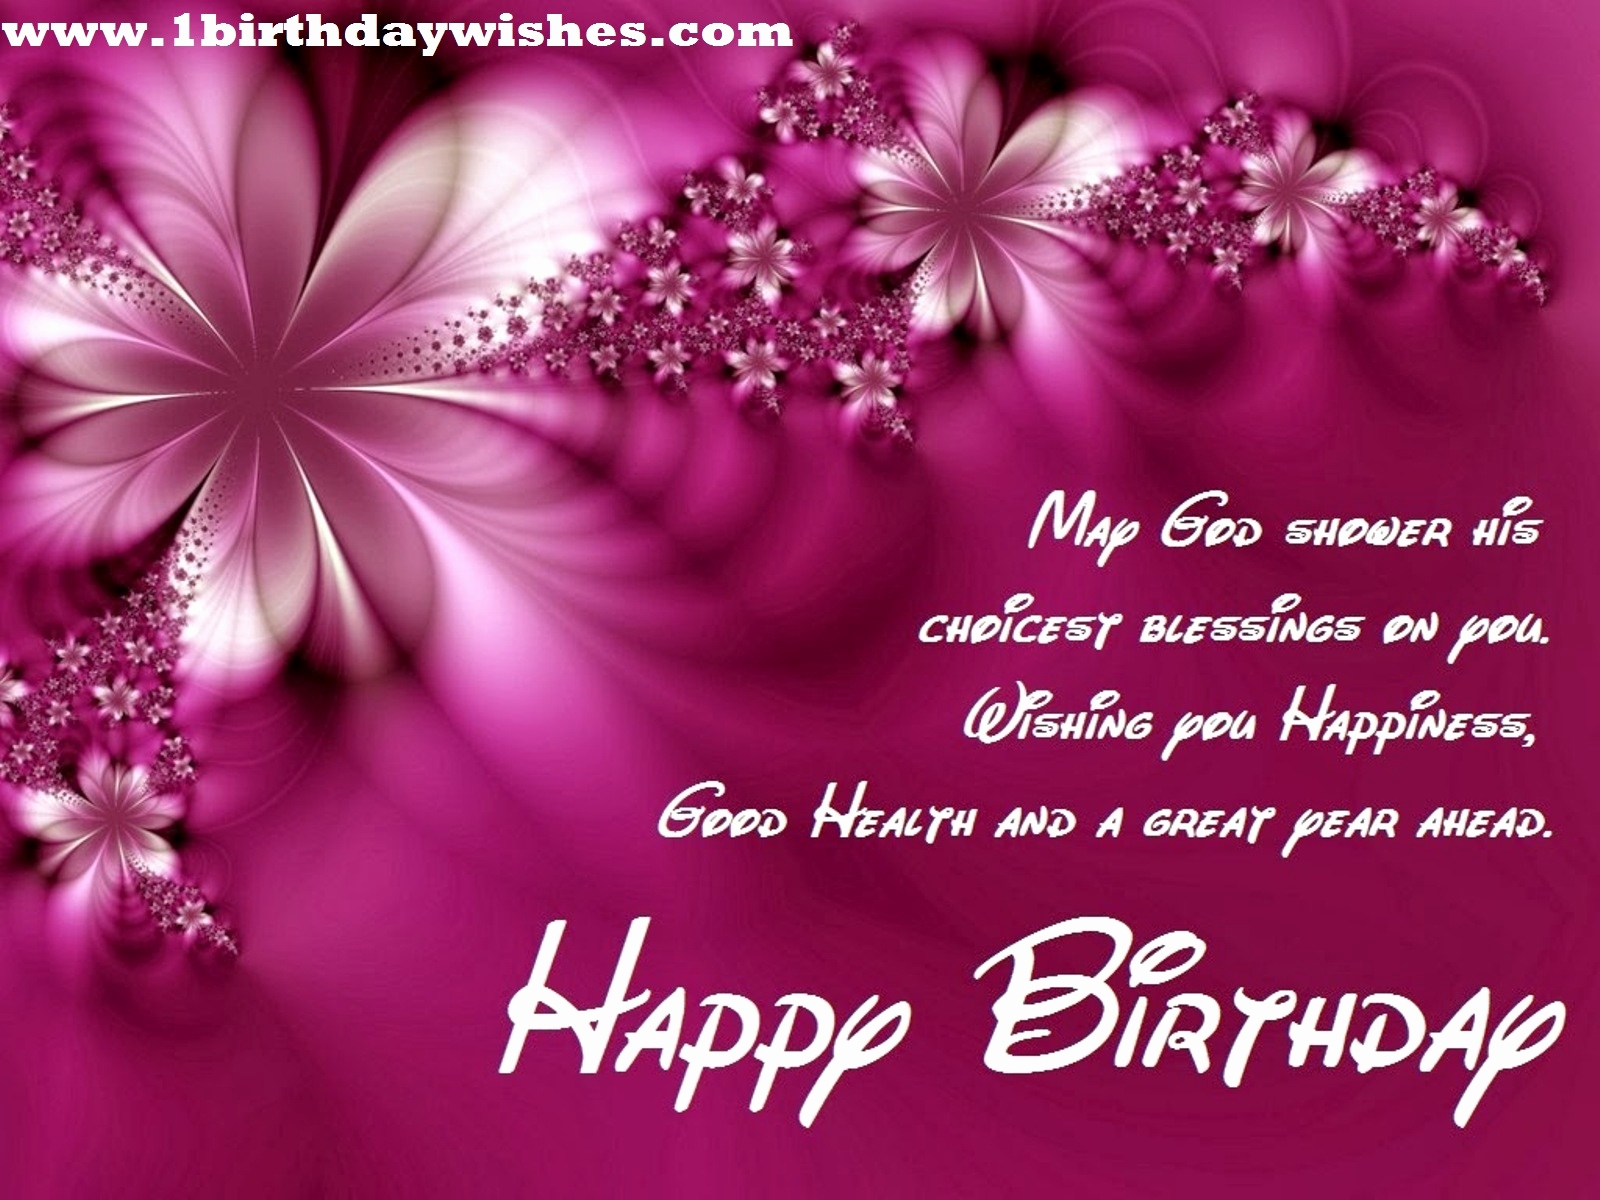 beautiful birthday wishes ; beautiful-birthday-cards-awesome-best-happy-birthday-wishes-for-all-birthday-wishes-of-beautiful-birthday-cards